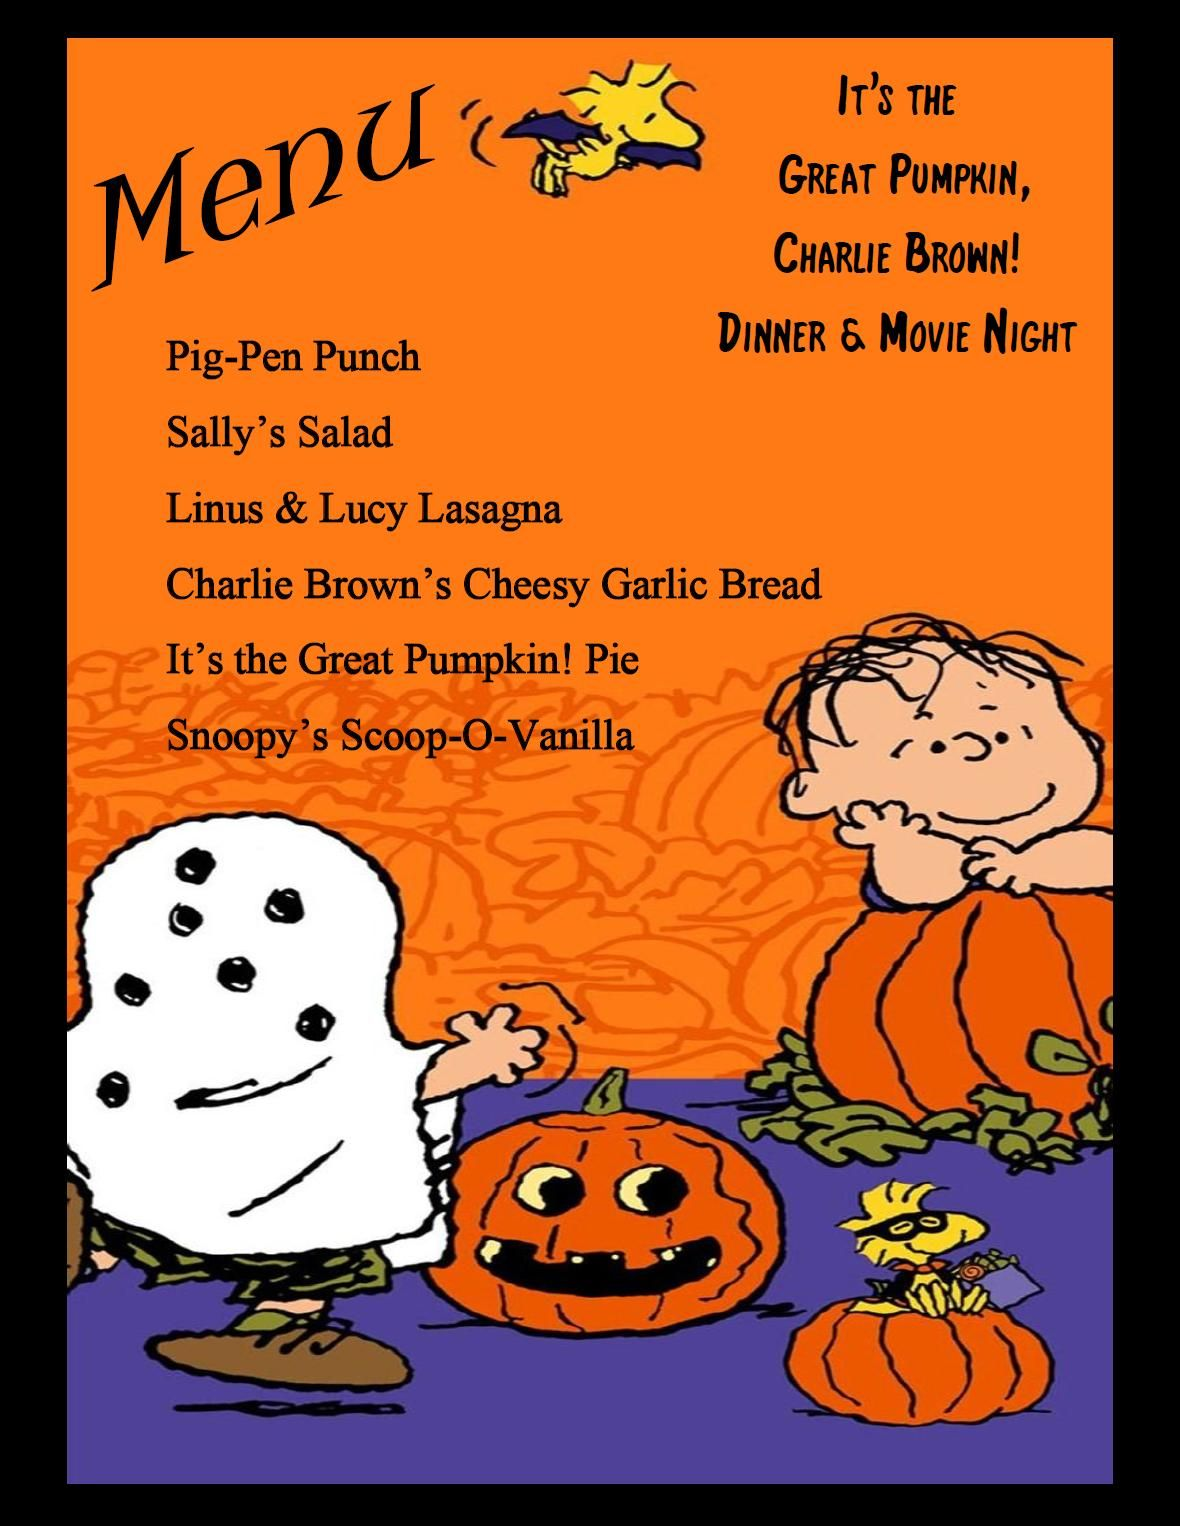 It's the Great Pumpkin, Charlie Brown! Dinner & Movie night ...